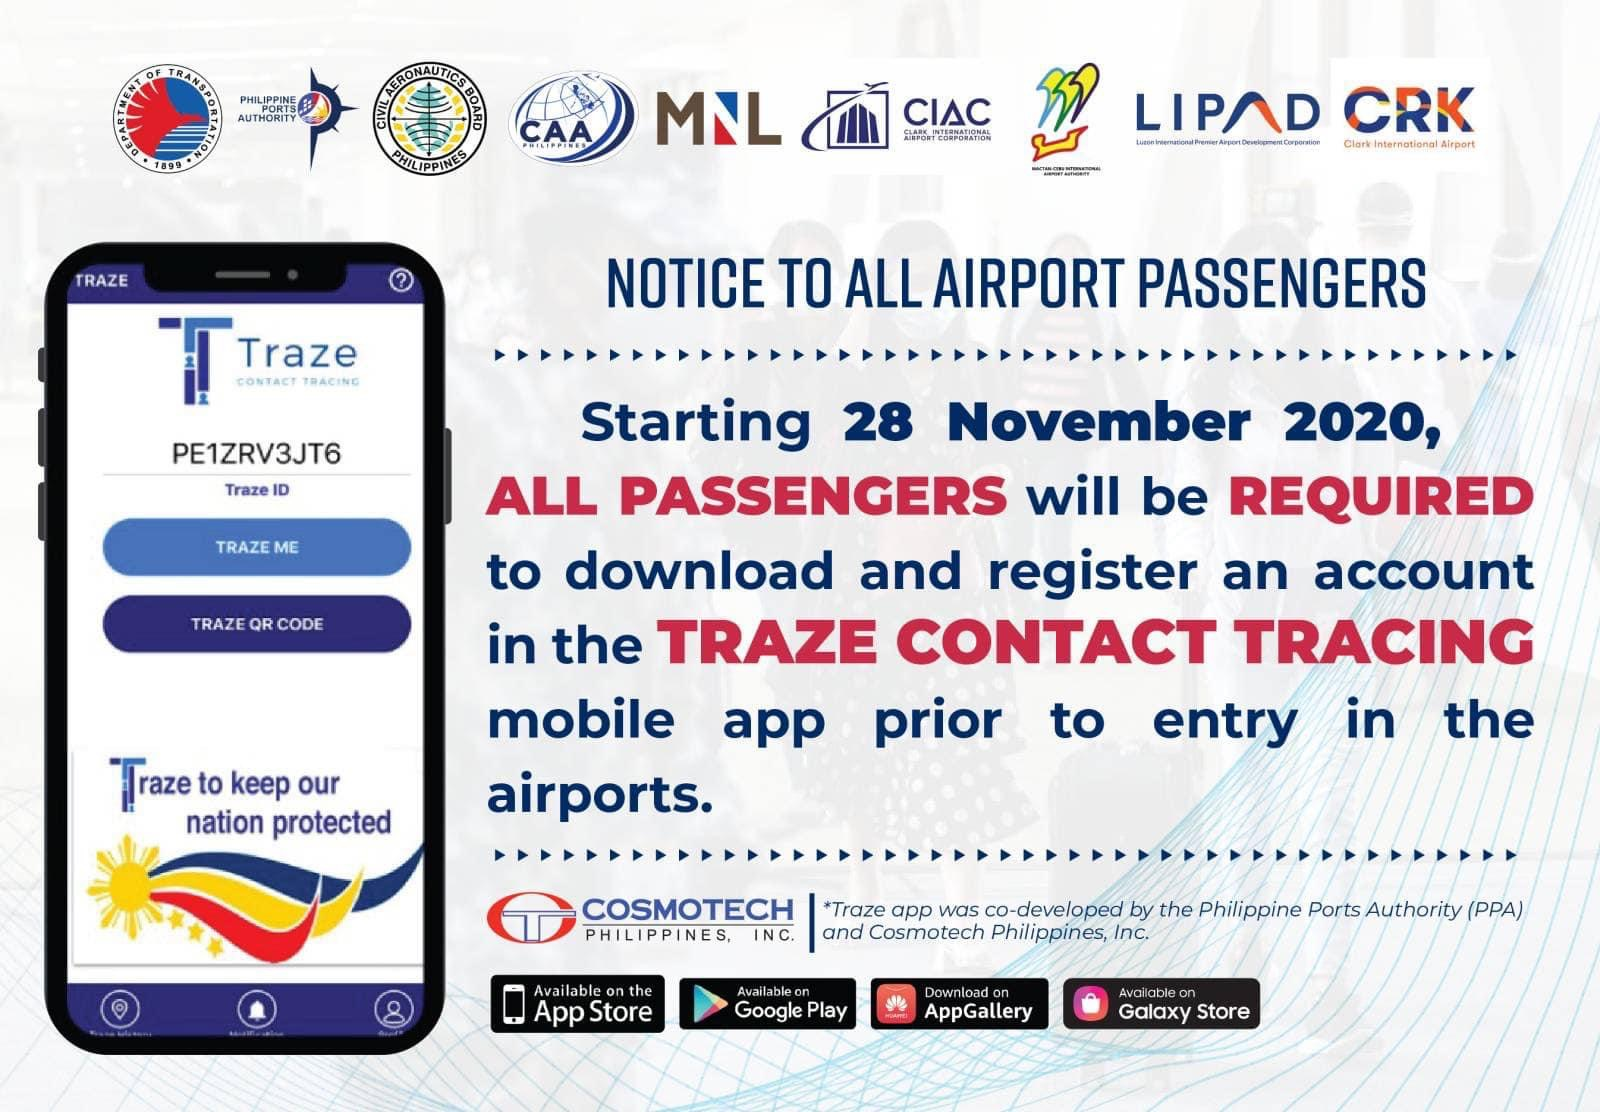 Traze App Contract Tracing Application in the Philippines 01